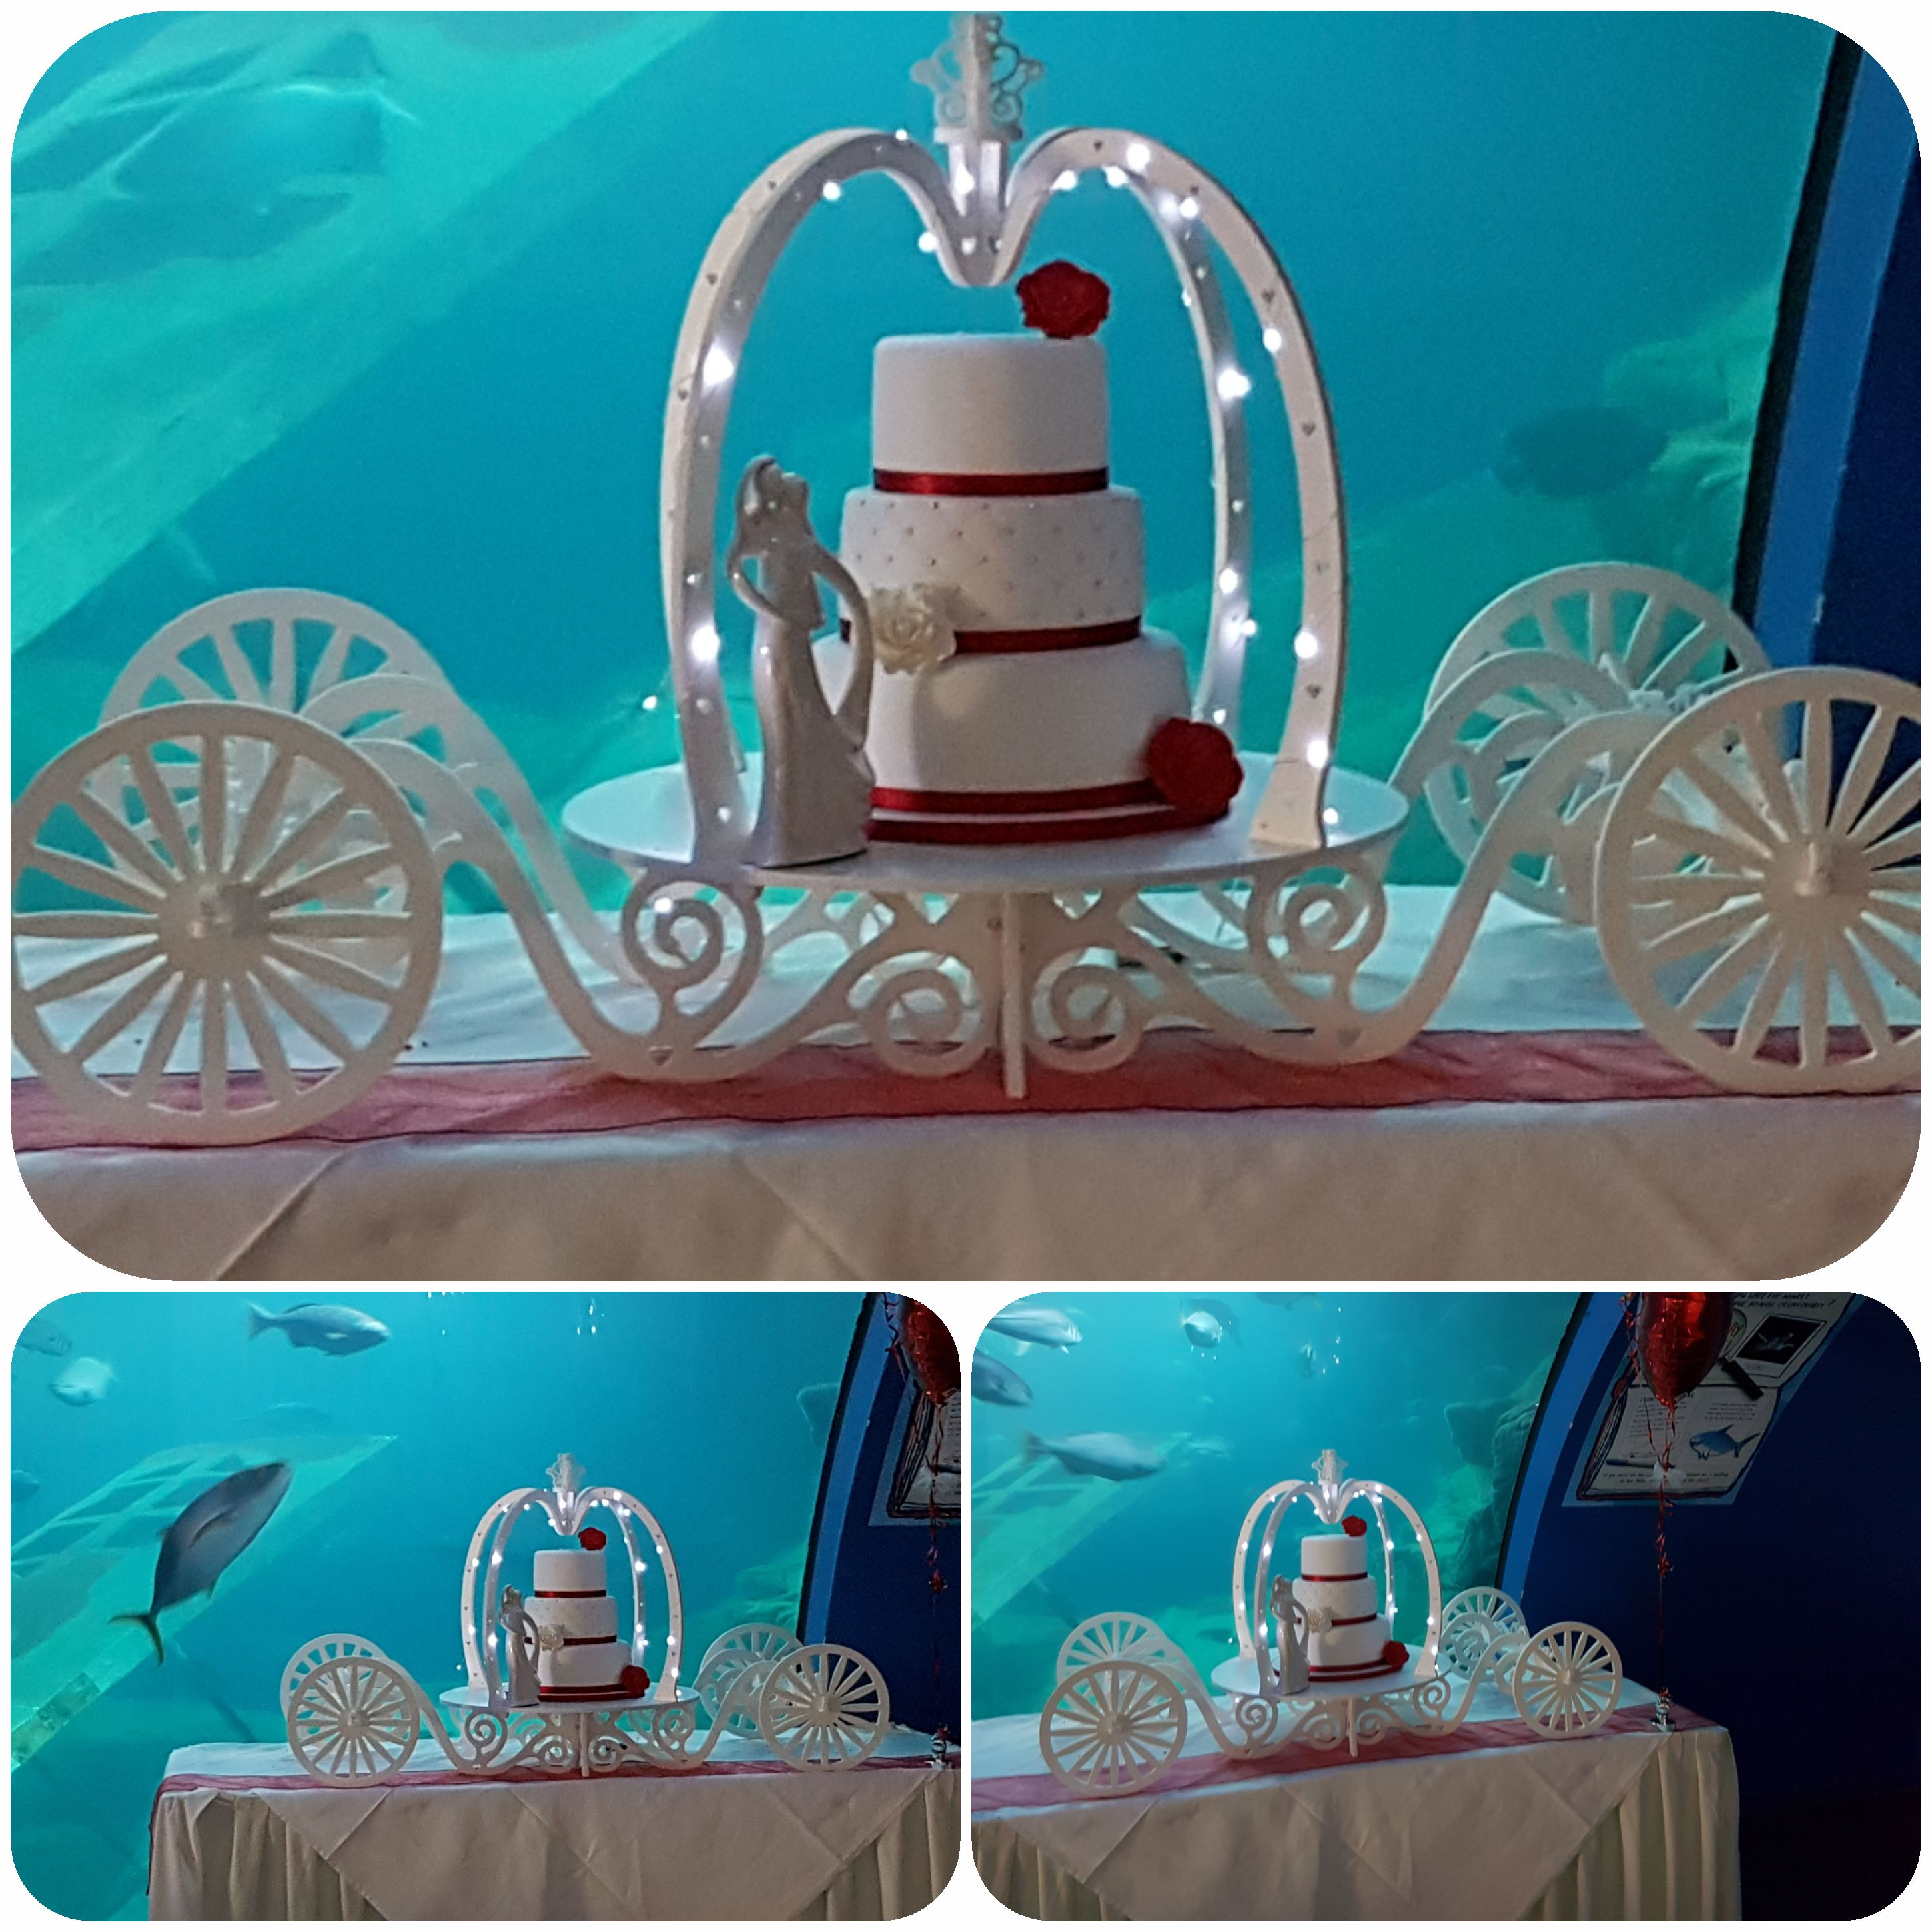 Princess carriage cake stand